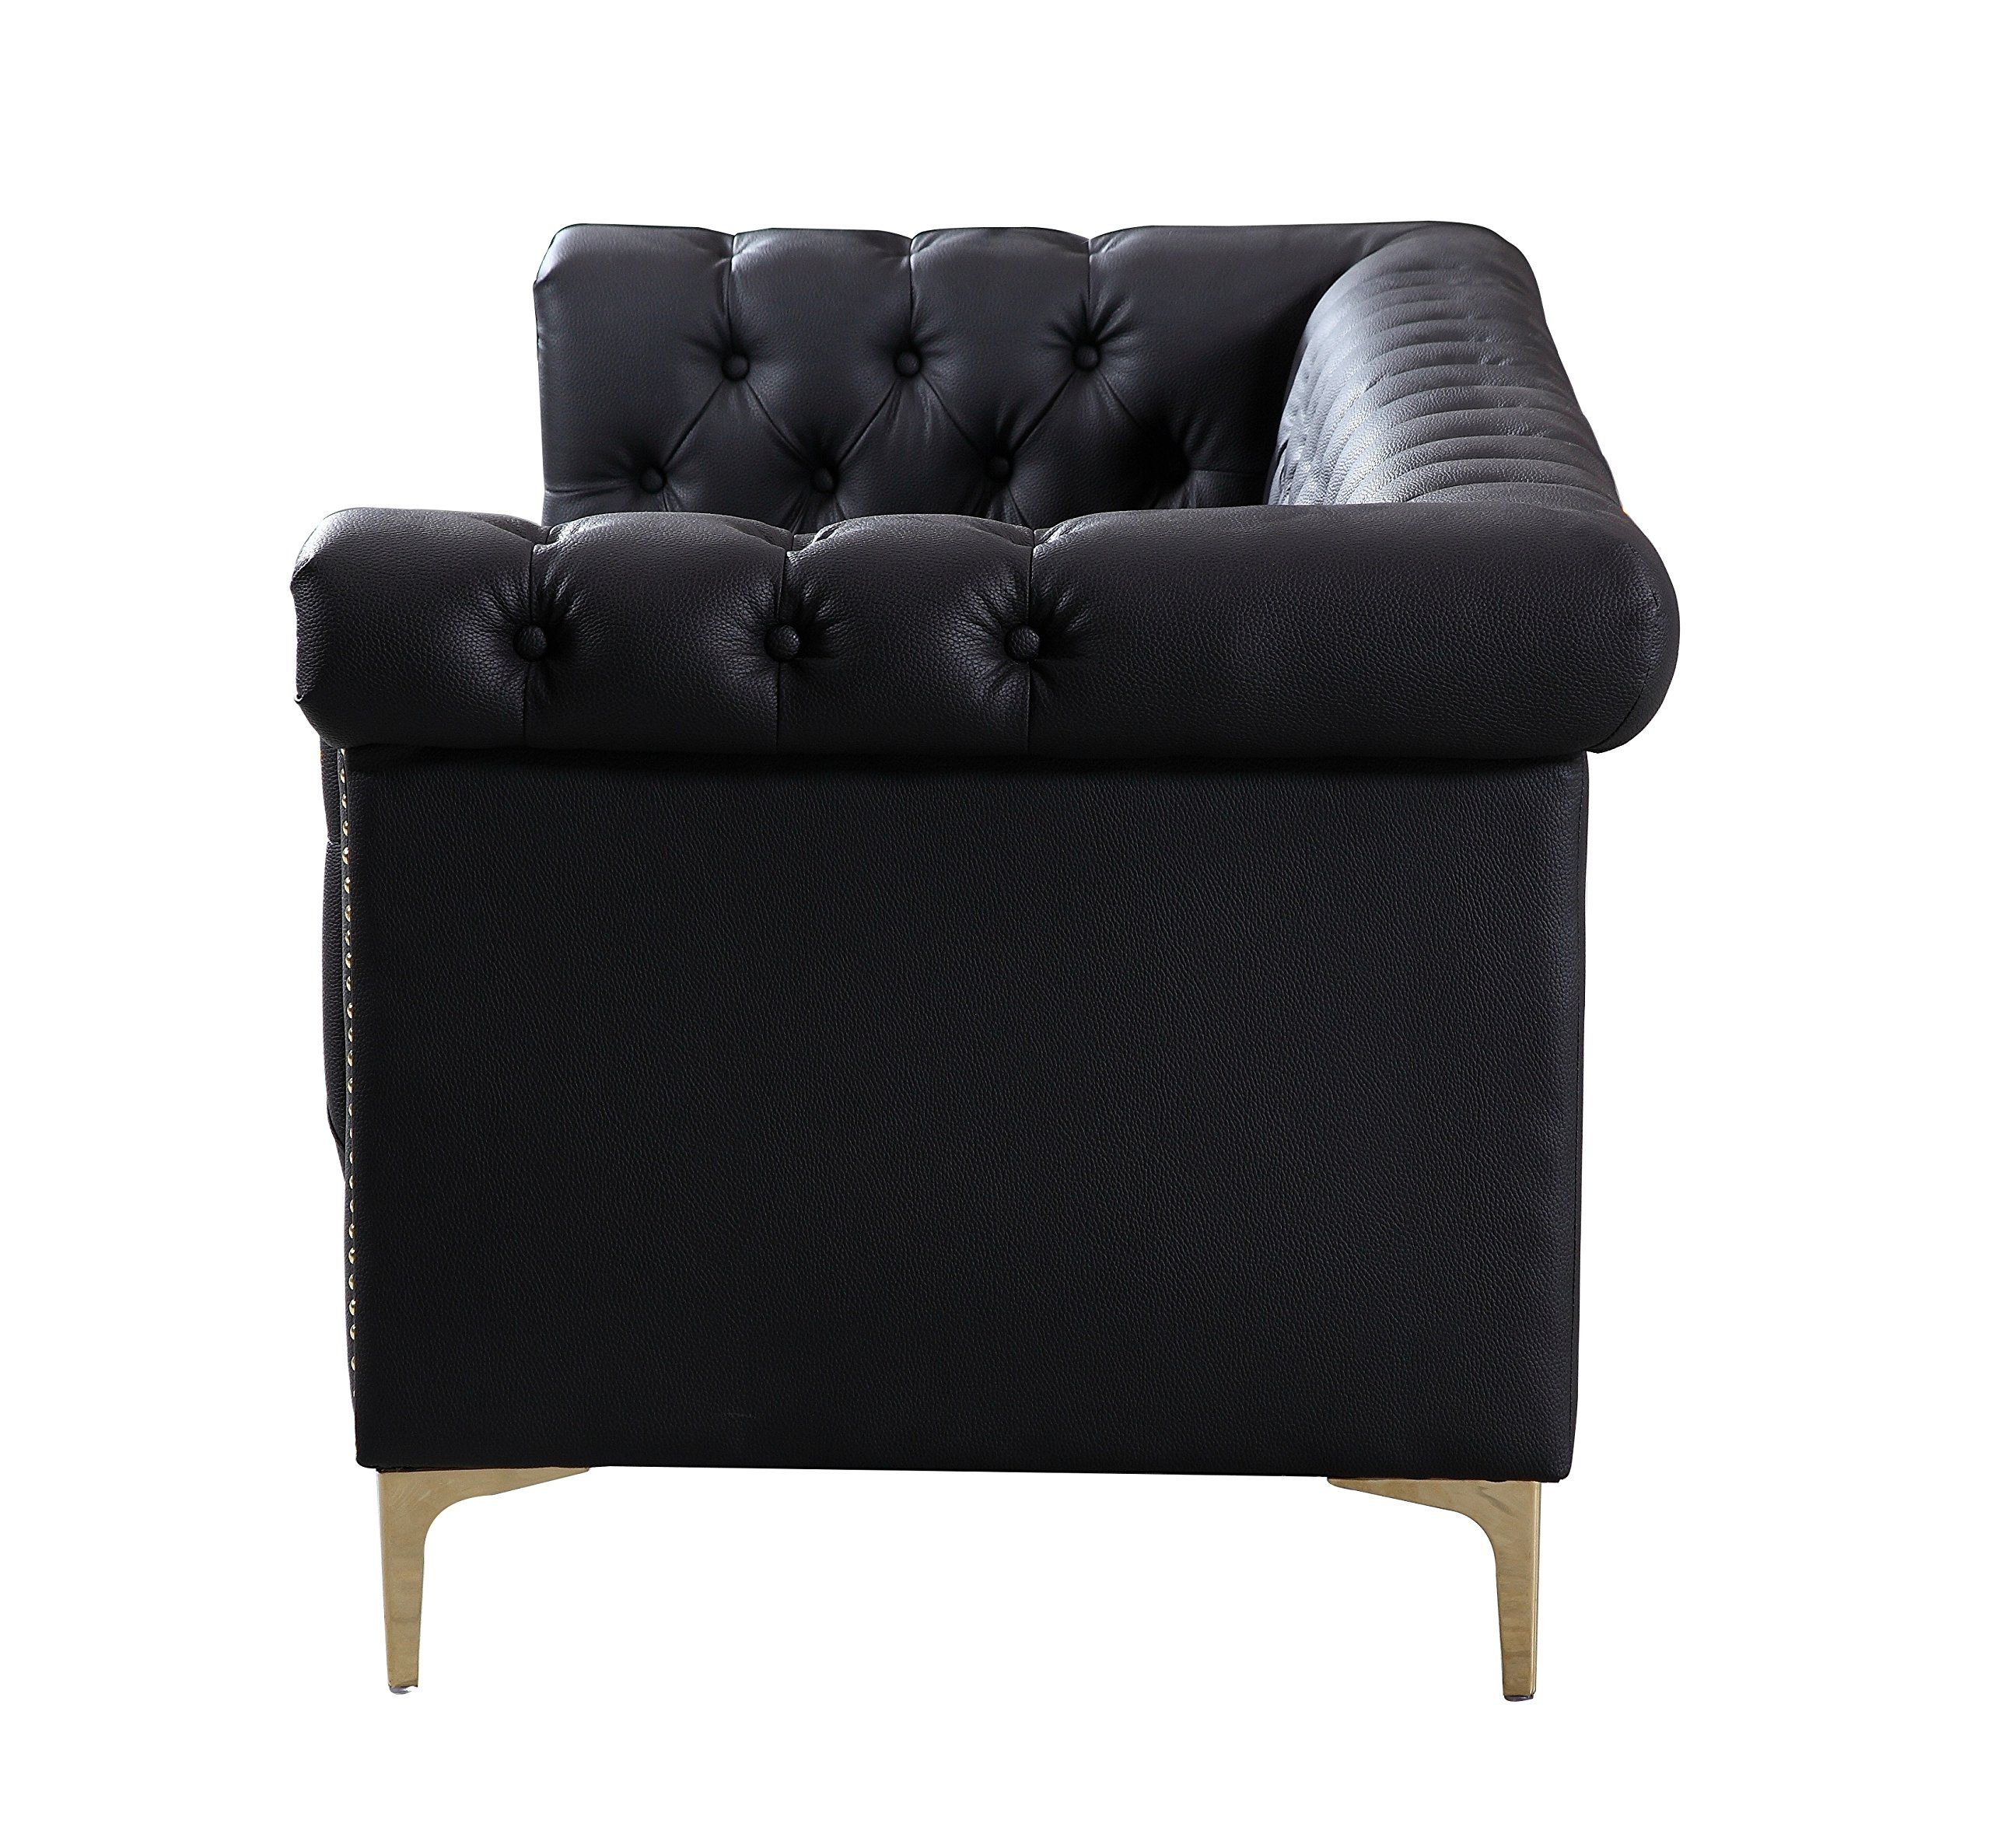 Iconic home winston modern tufted gold nail head trim black pu leather sofa with gold tone metal ylegs learn more by visiting the image link affiliate